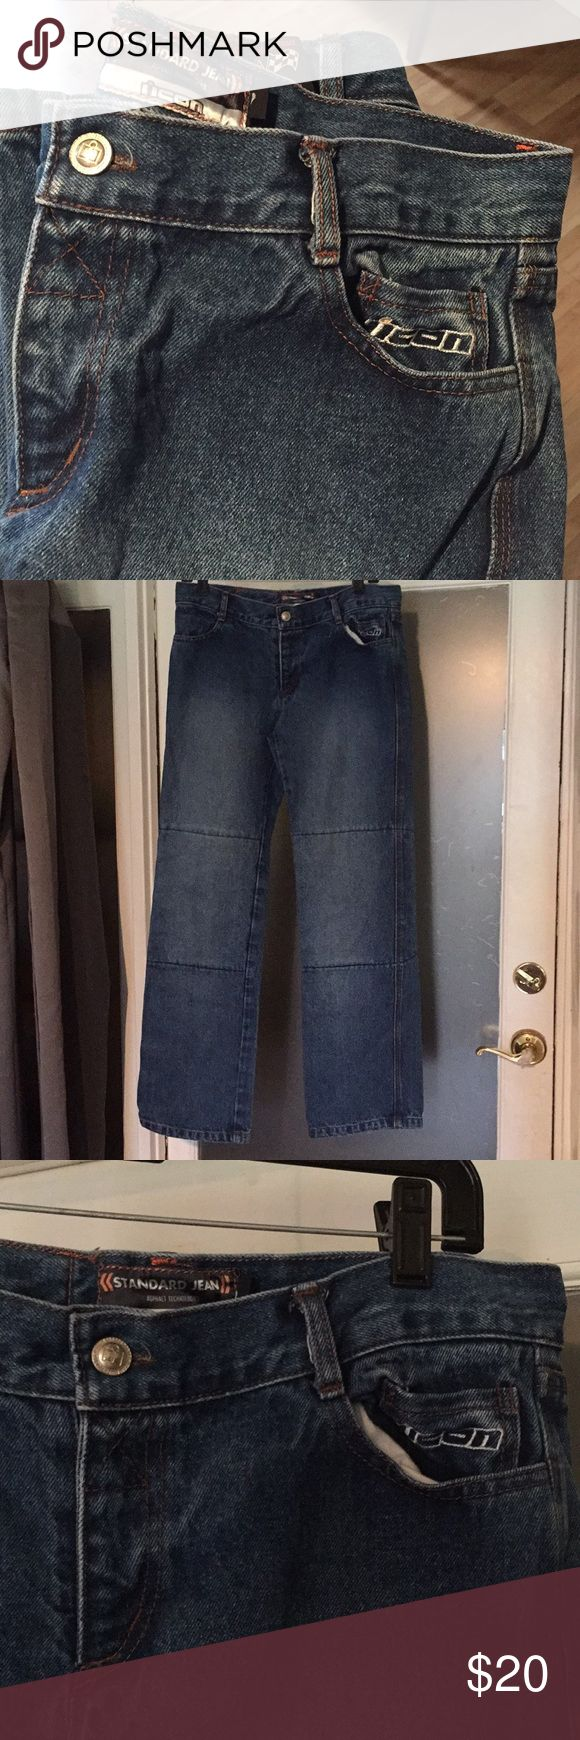 ICON MOTORSPORT Size 9 Asphalt Jeans Denim Pants Icon Motorsports size 9 standard pant 100% cotton jeans.  Excellent condition. ICON Jeans Boot Cut